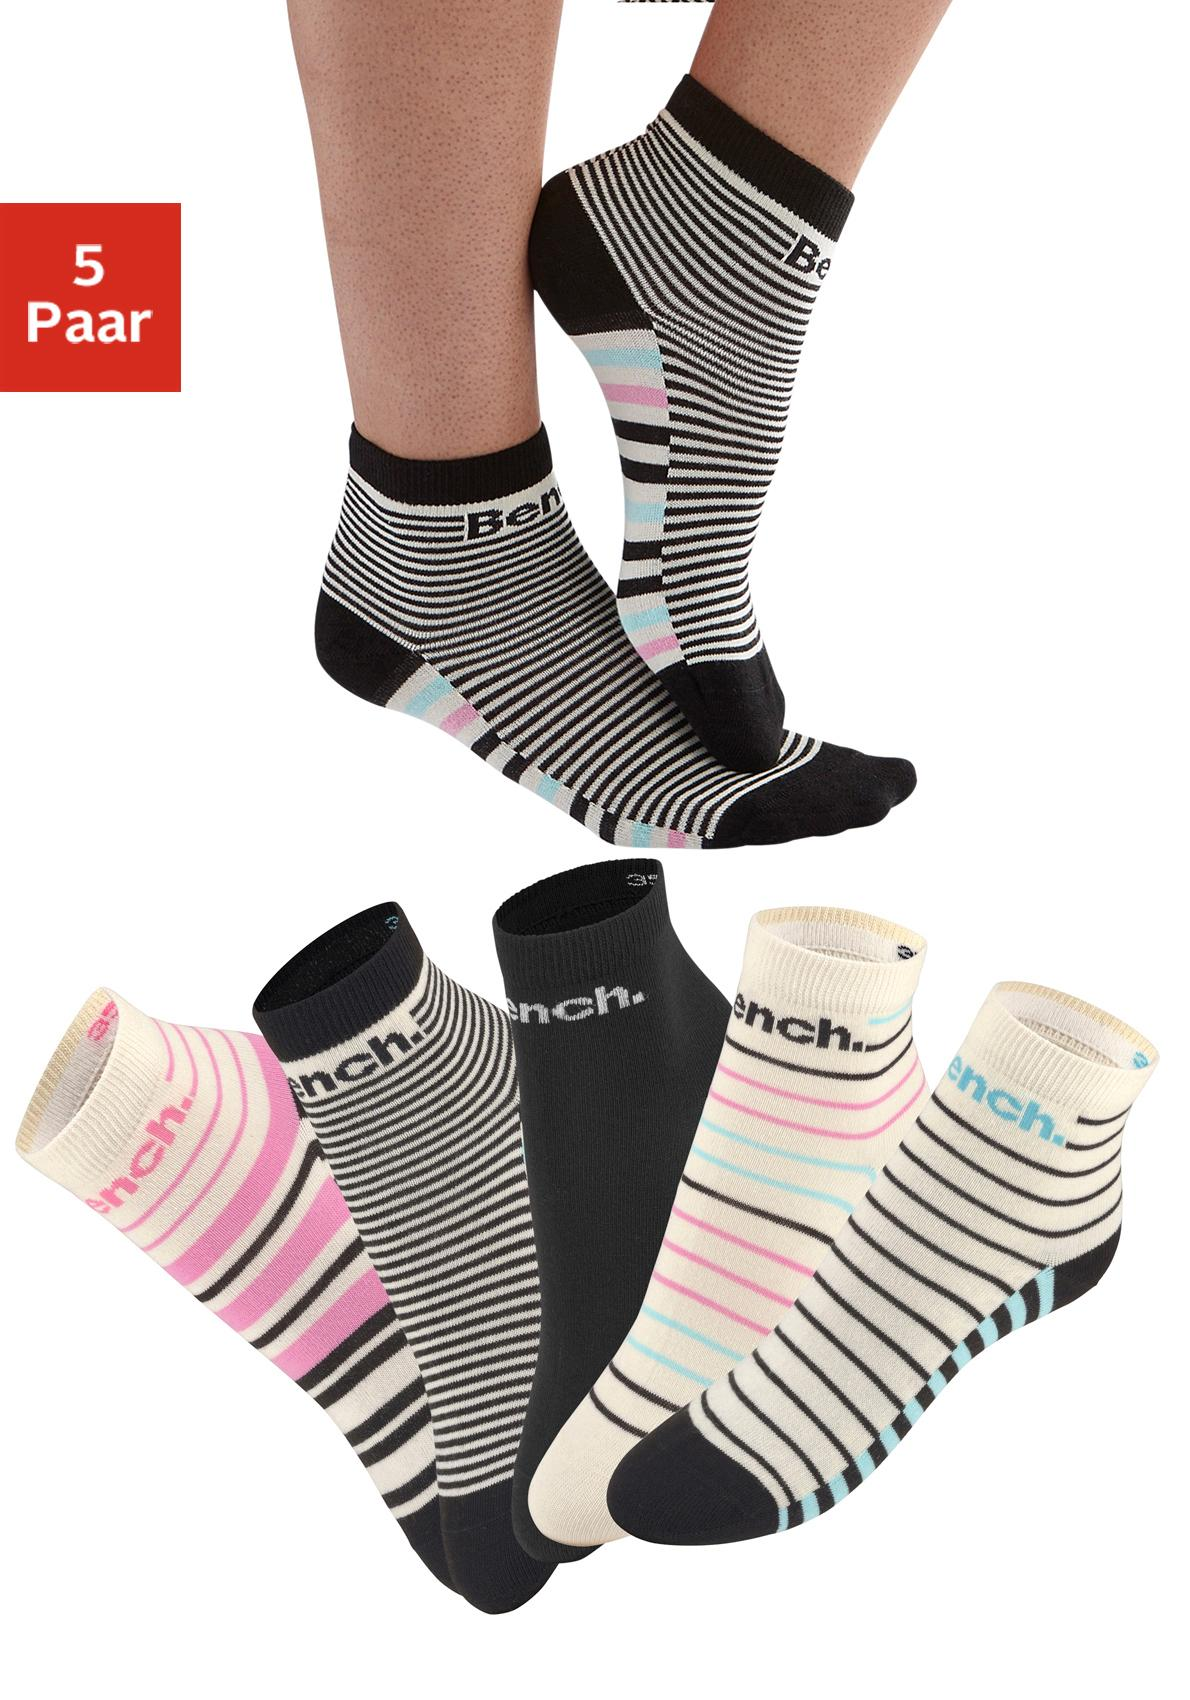 Bench. Kurzsocken (5 Paar)